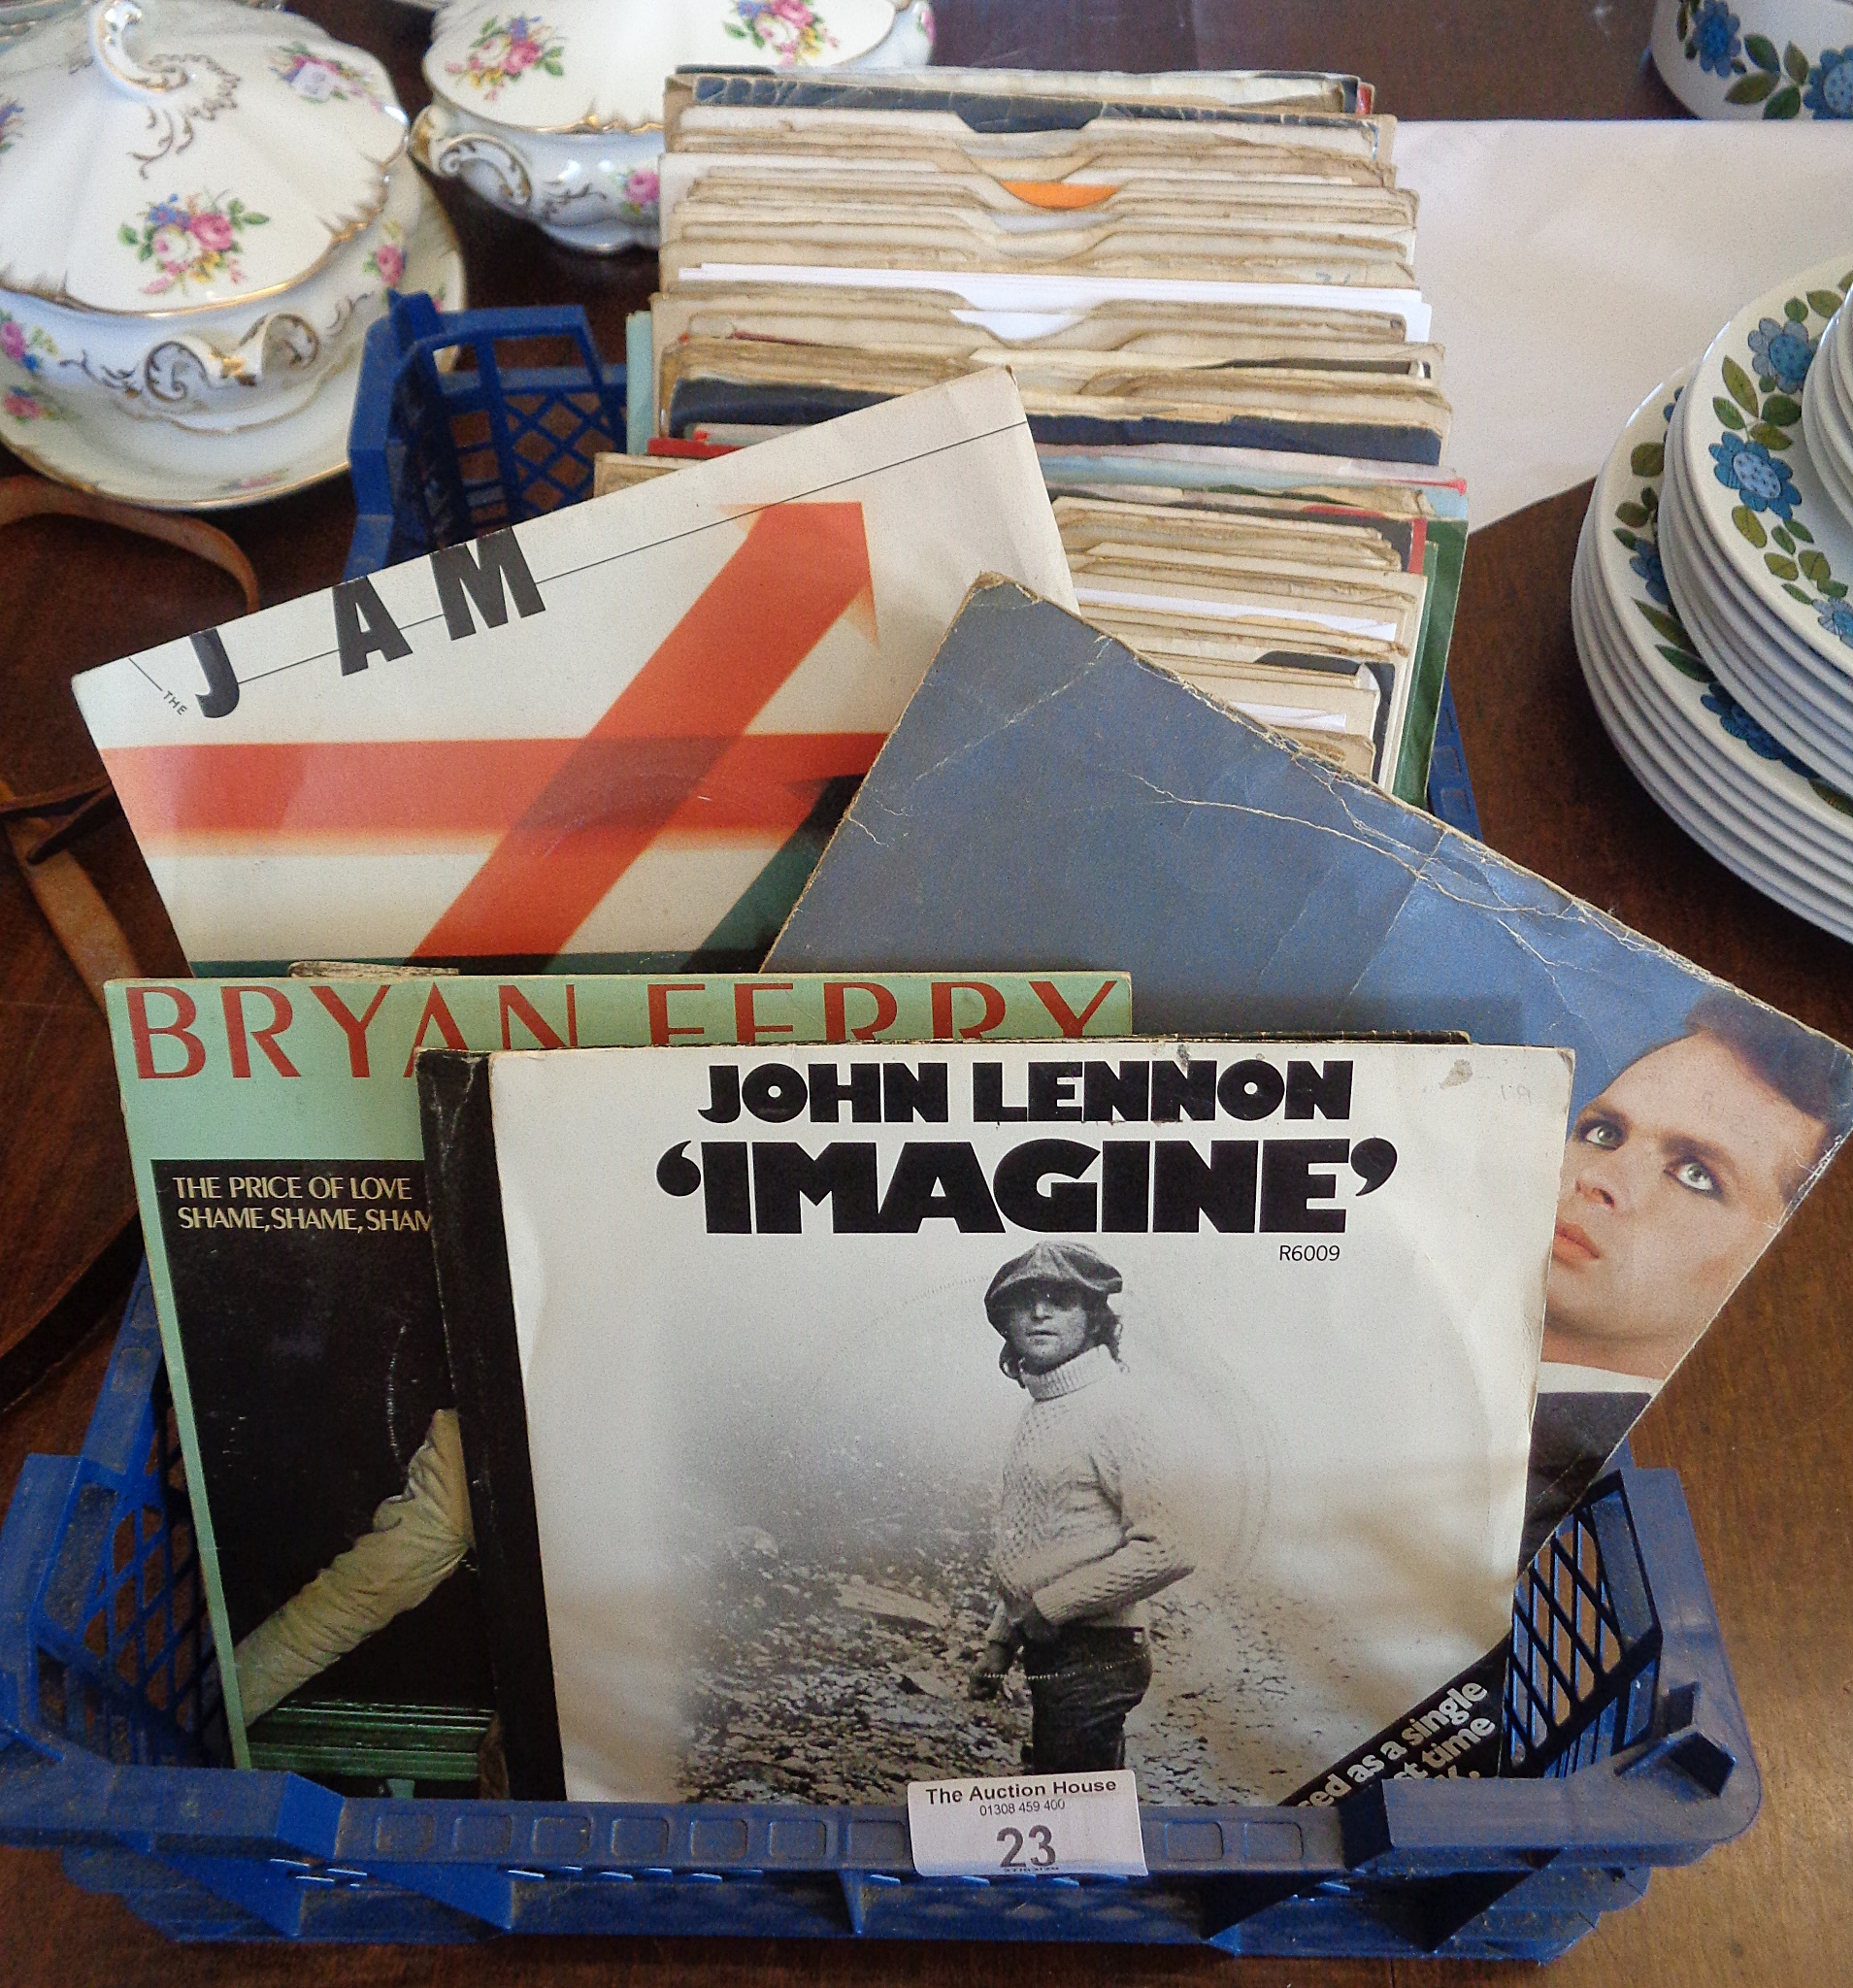 Lot 23 - Approx. 120 vinyl singles, 1970's pop and rock, some picture sleeves